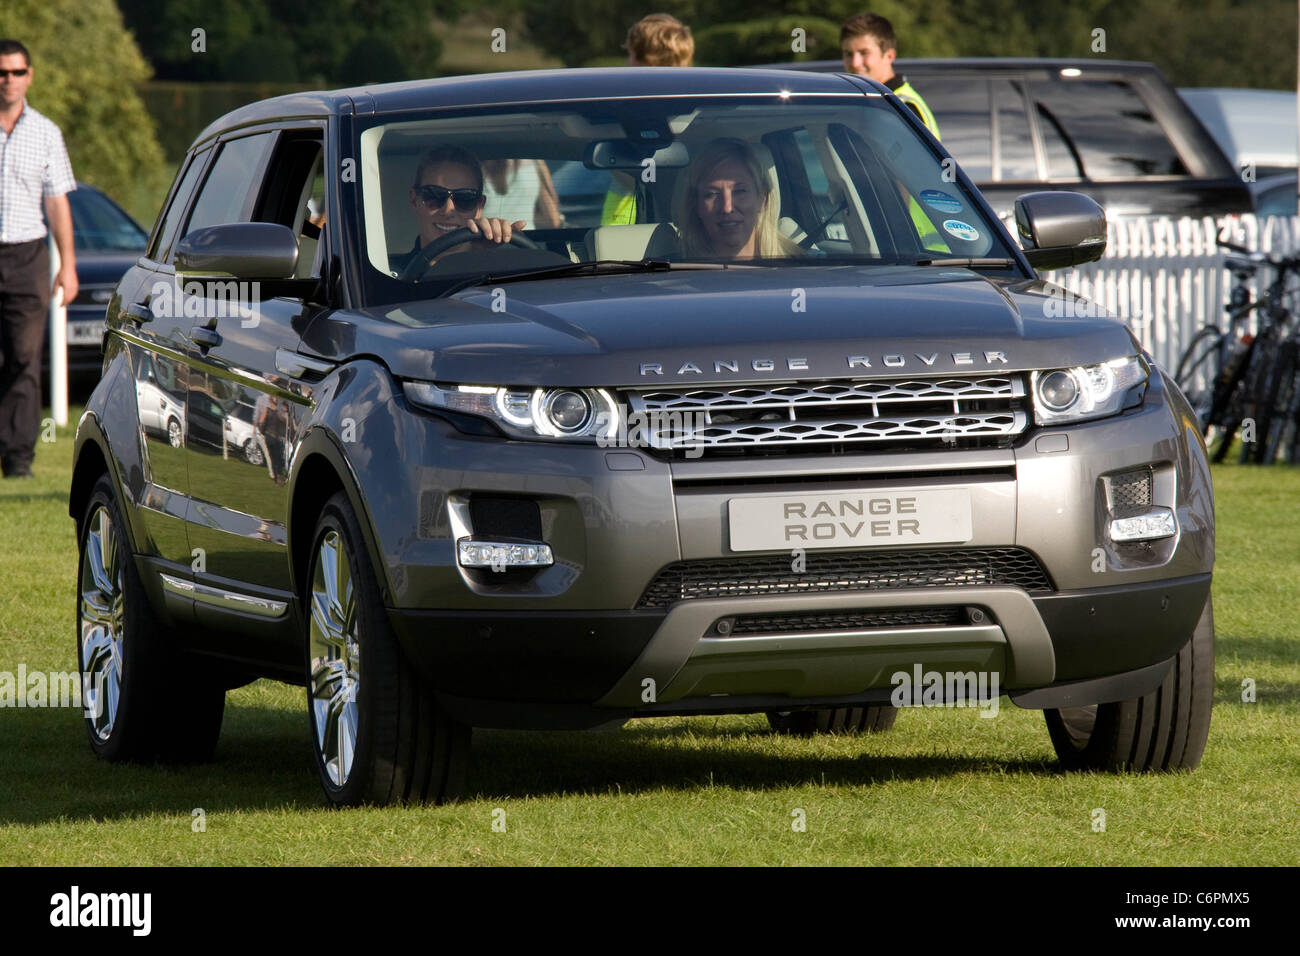 Zara Phillips takes delivery of a new Range Rover Evoke at The 2011 Land Rover Burghley Horse Trials,Stamford,Lincolnshire - Stock Image